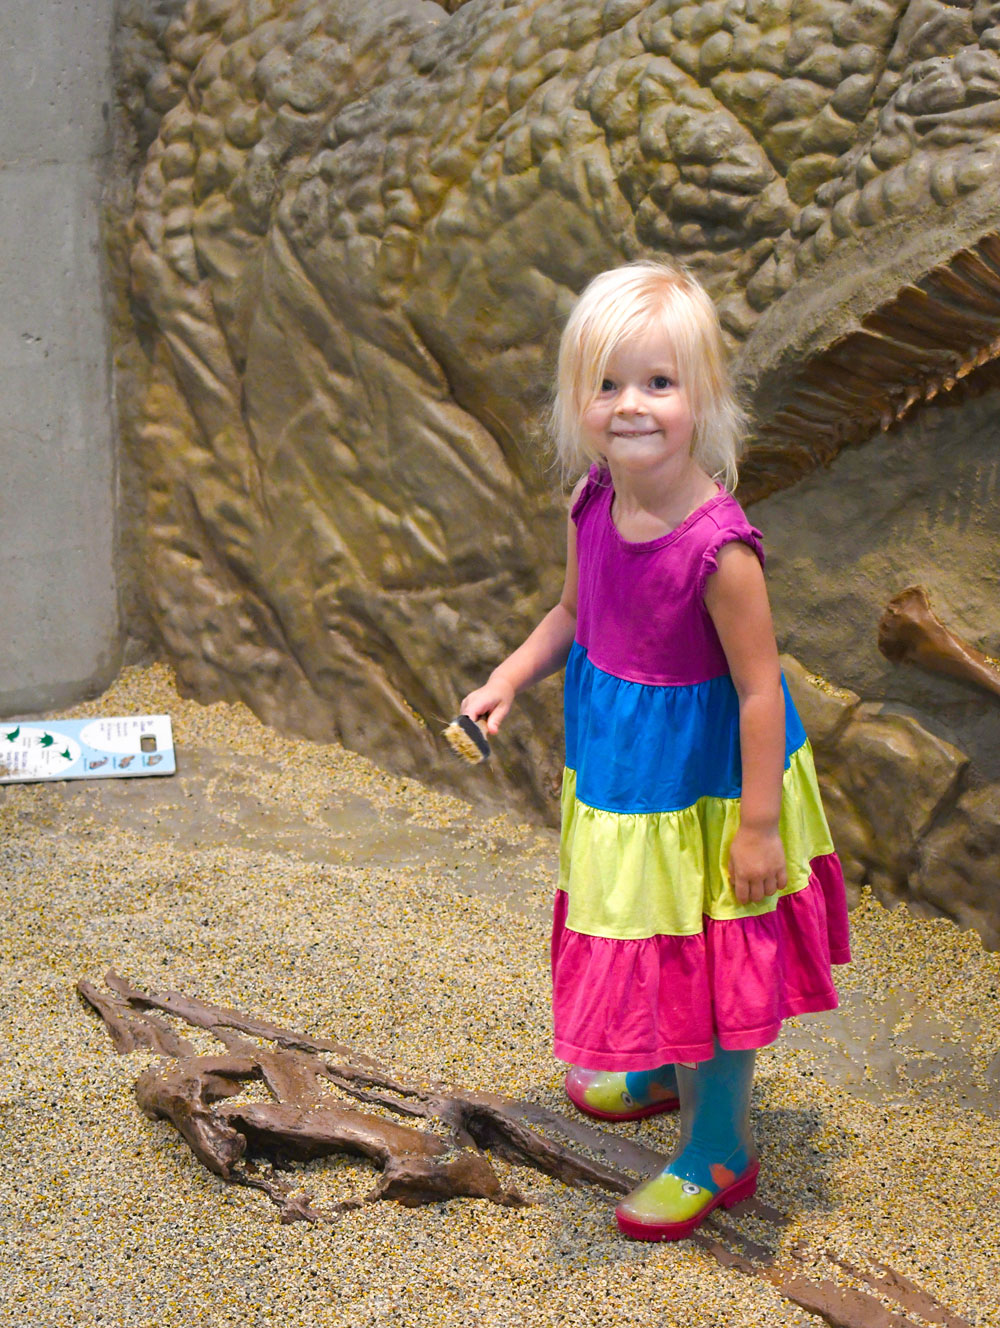 Denver Museum of Nature and Science Kids Discovery Zone archaeology dig play area